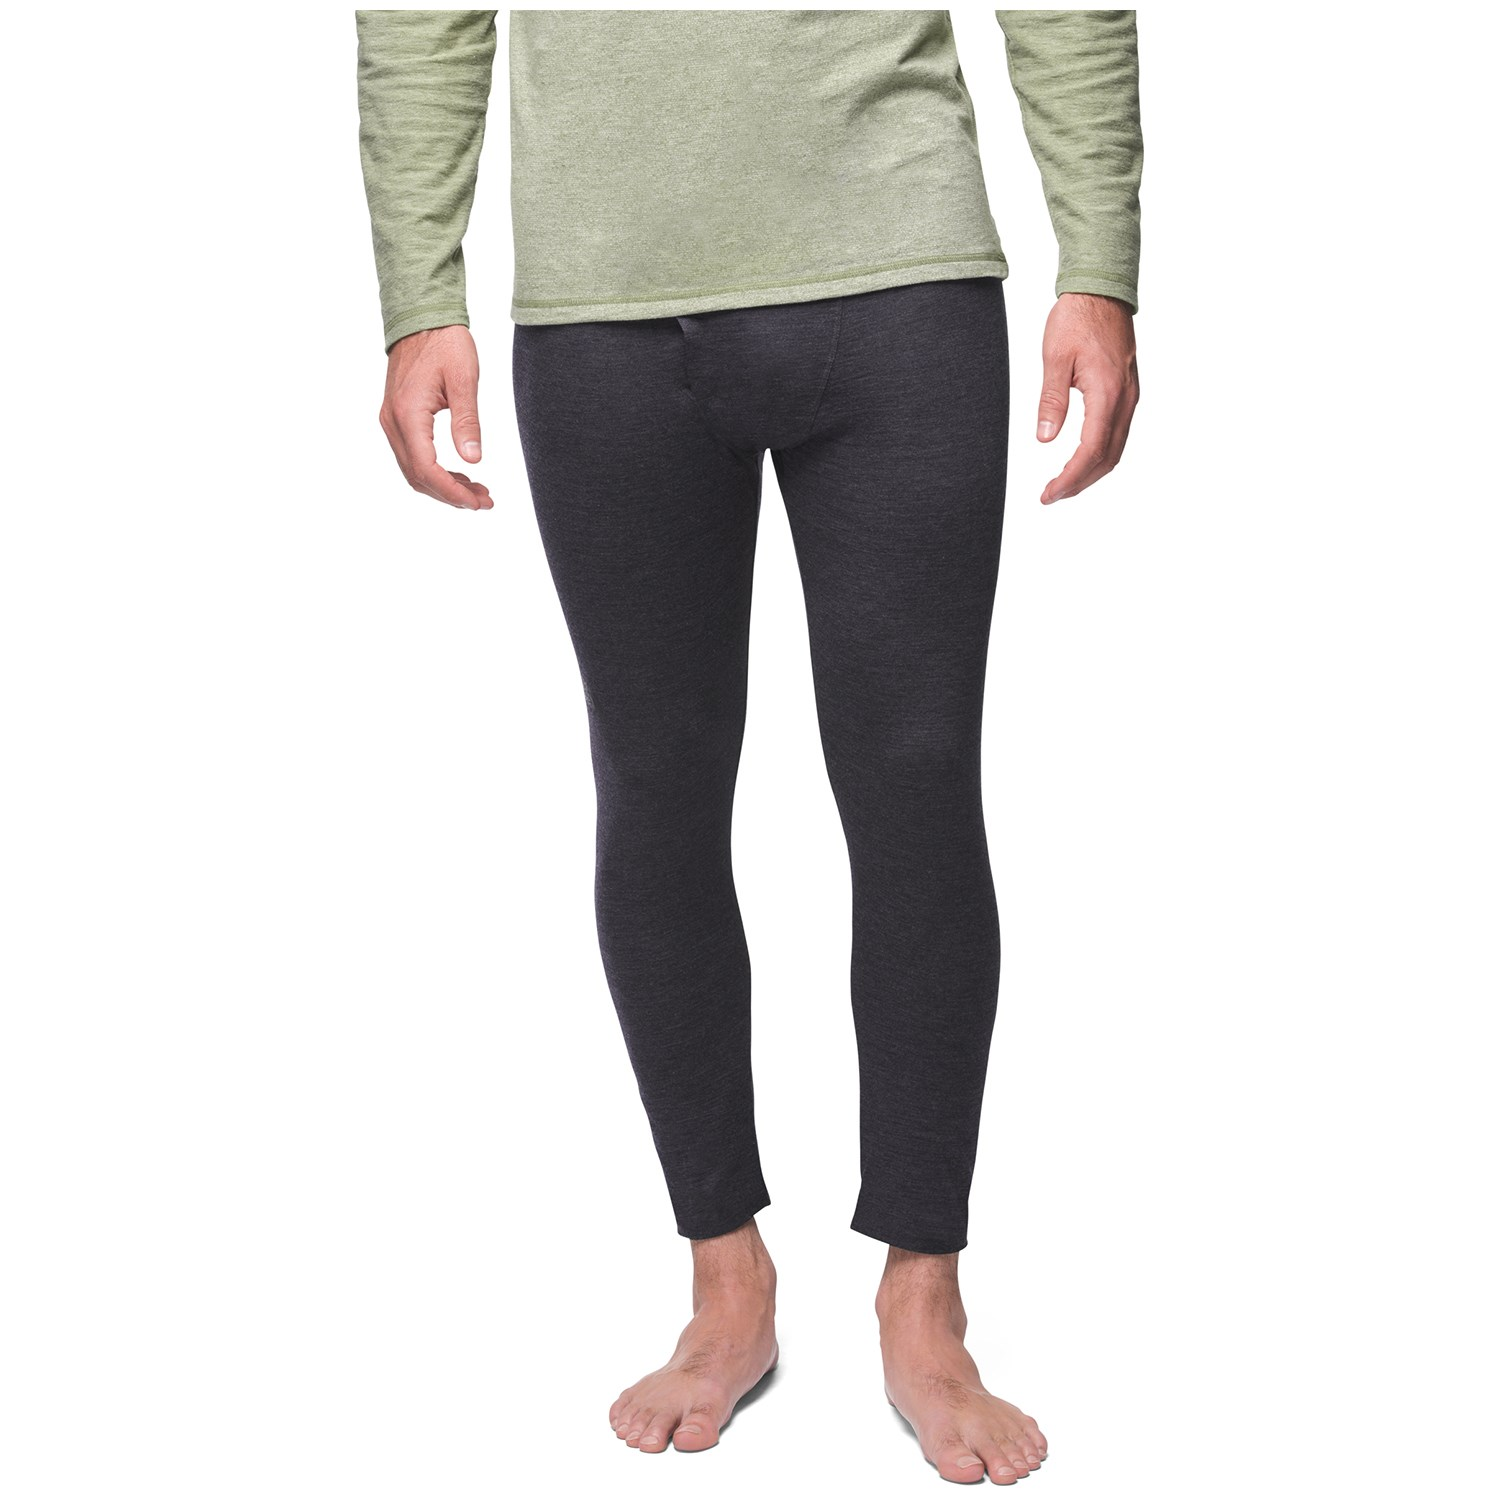 9e76f96f6 The North Face Wool Baselayer Tight Pants   evo